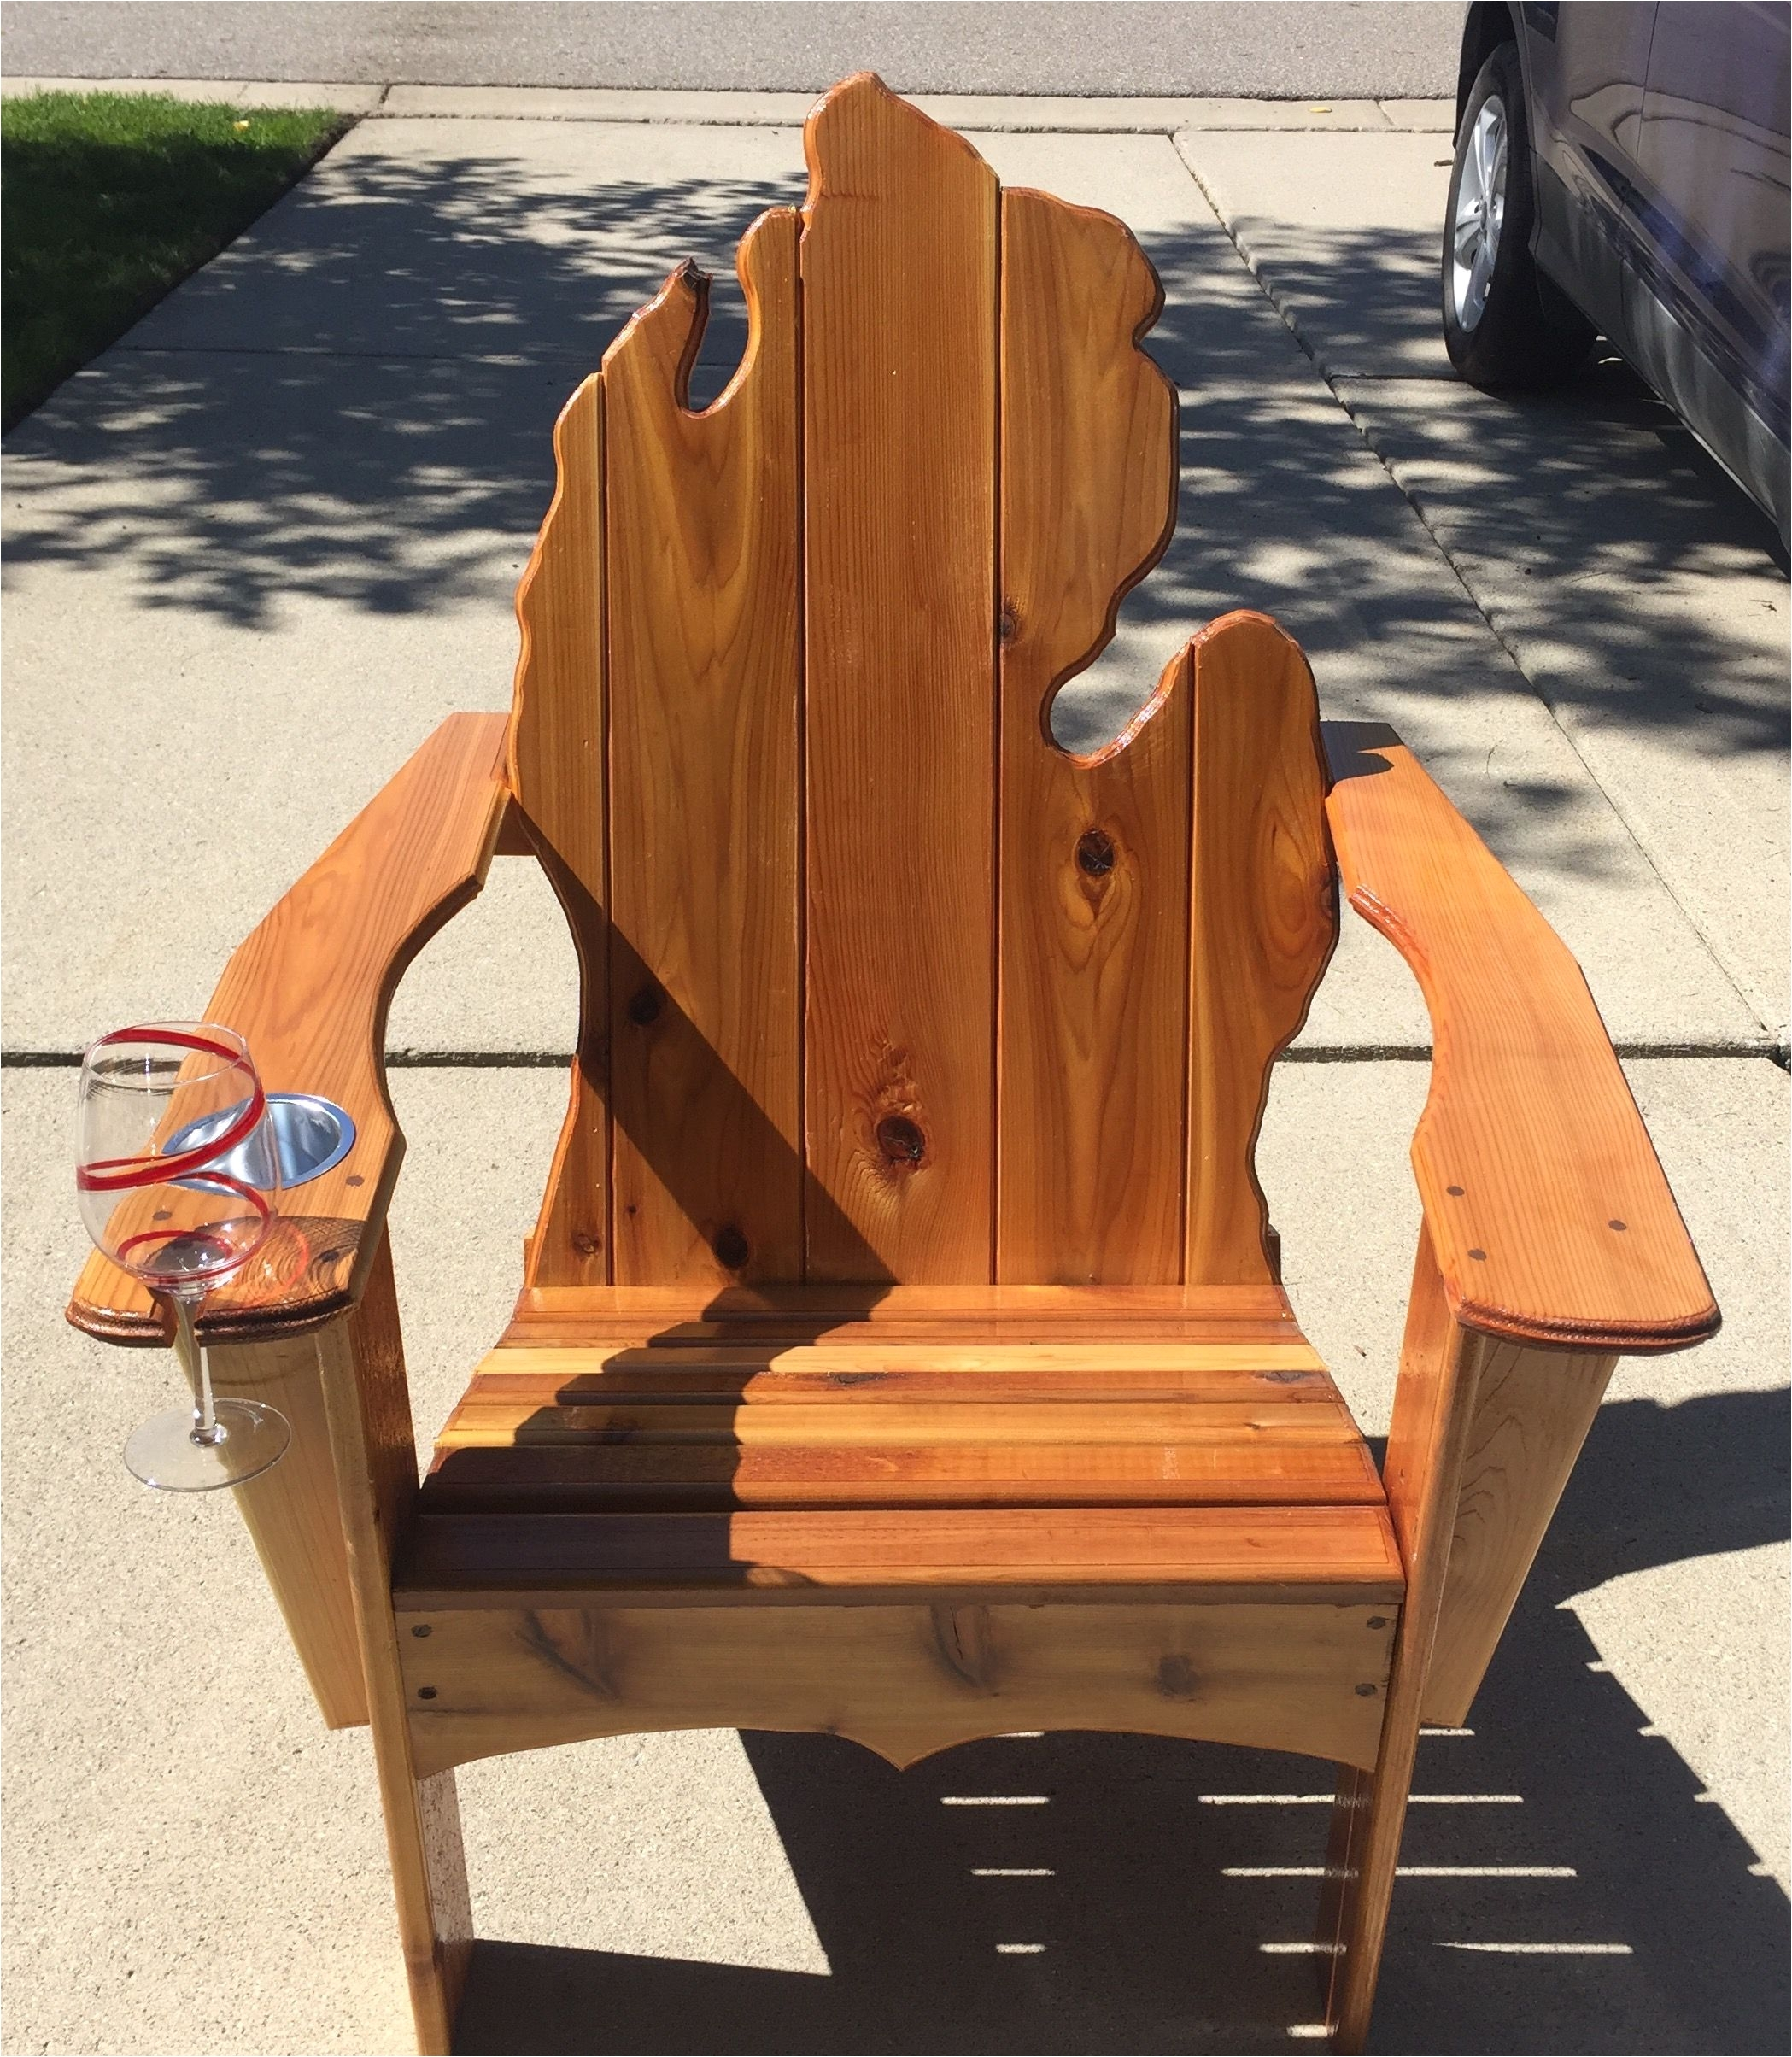 Big and Tall Adirondack Chair Plans Michigan Adirondack Chair with Cup Holder and Wine Glass Slot I